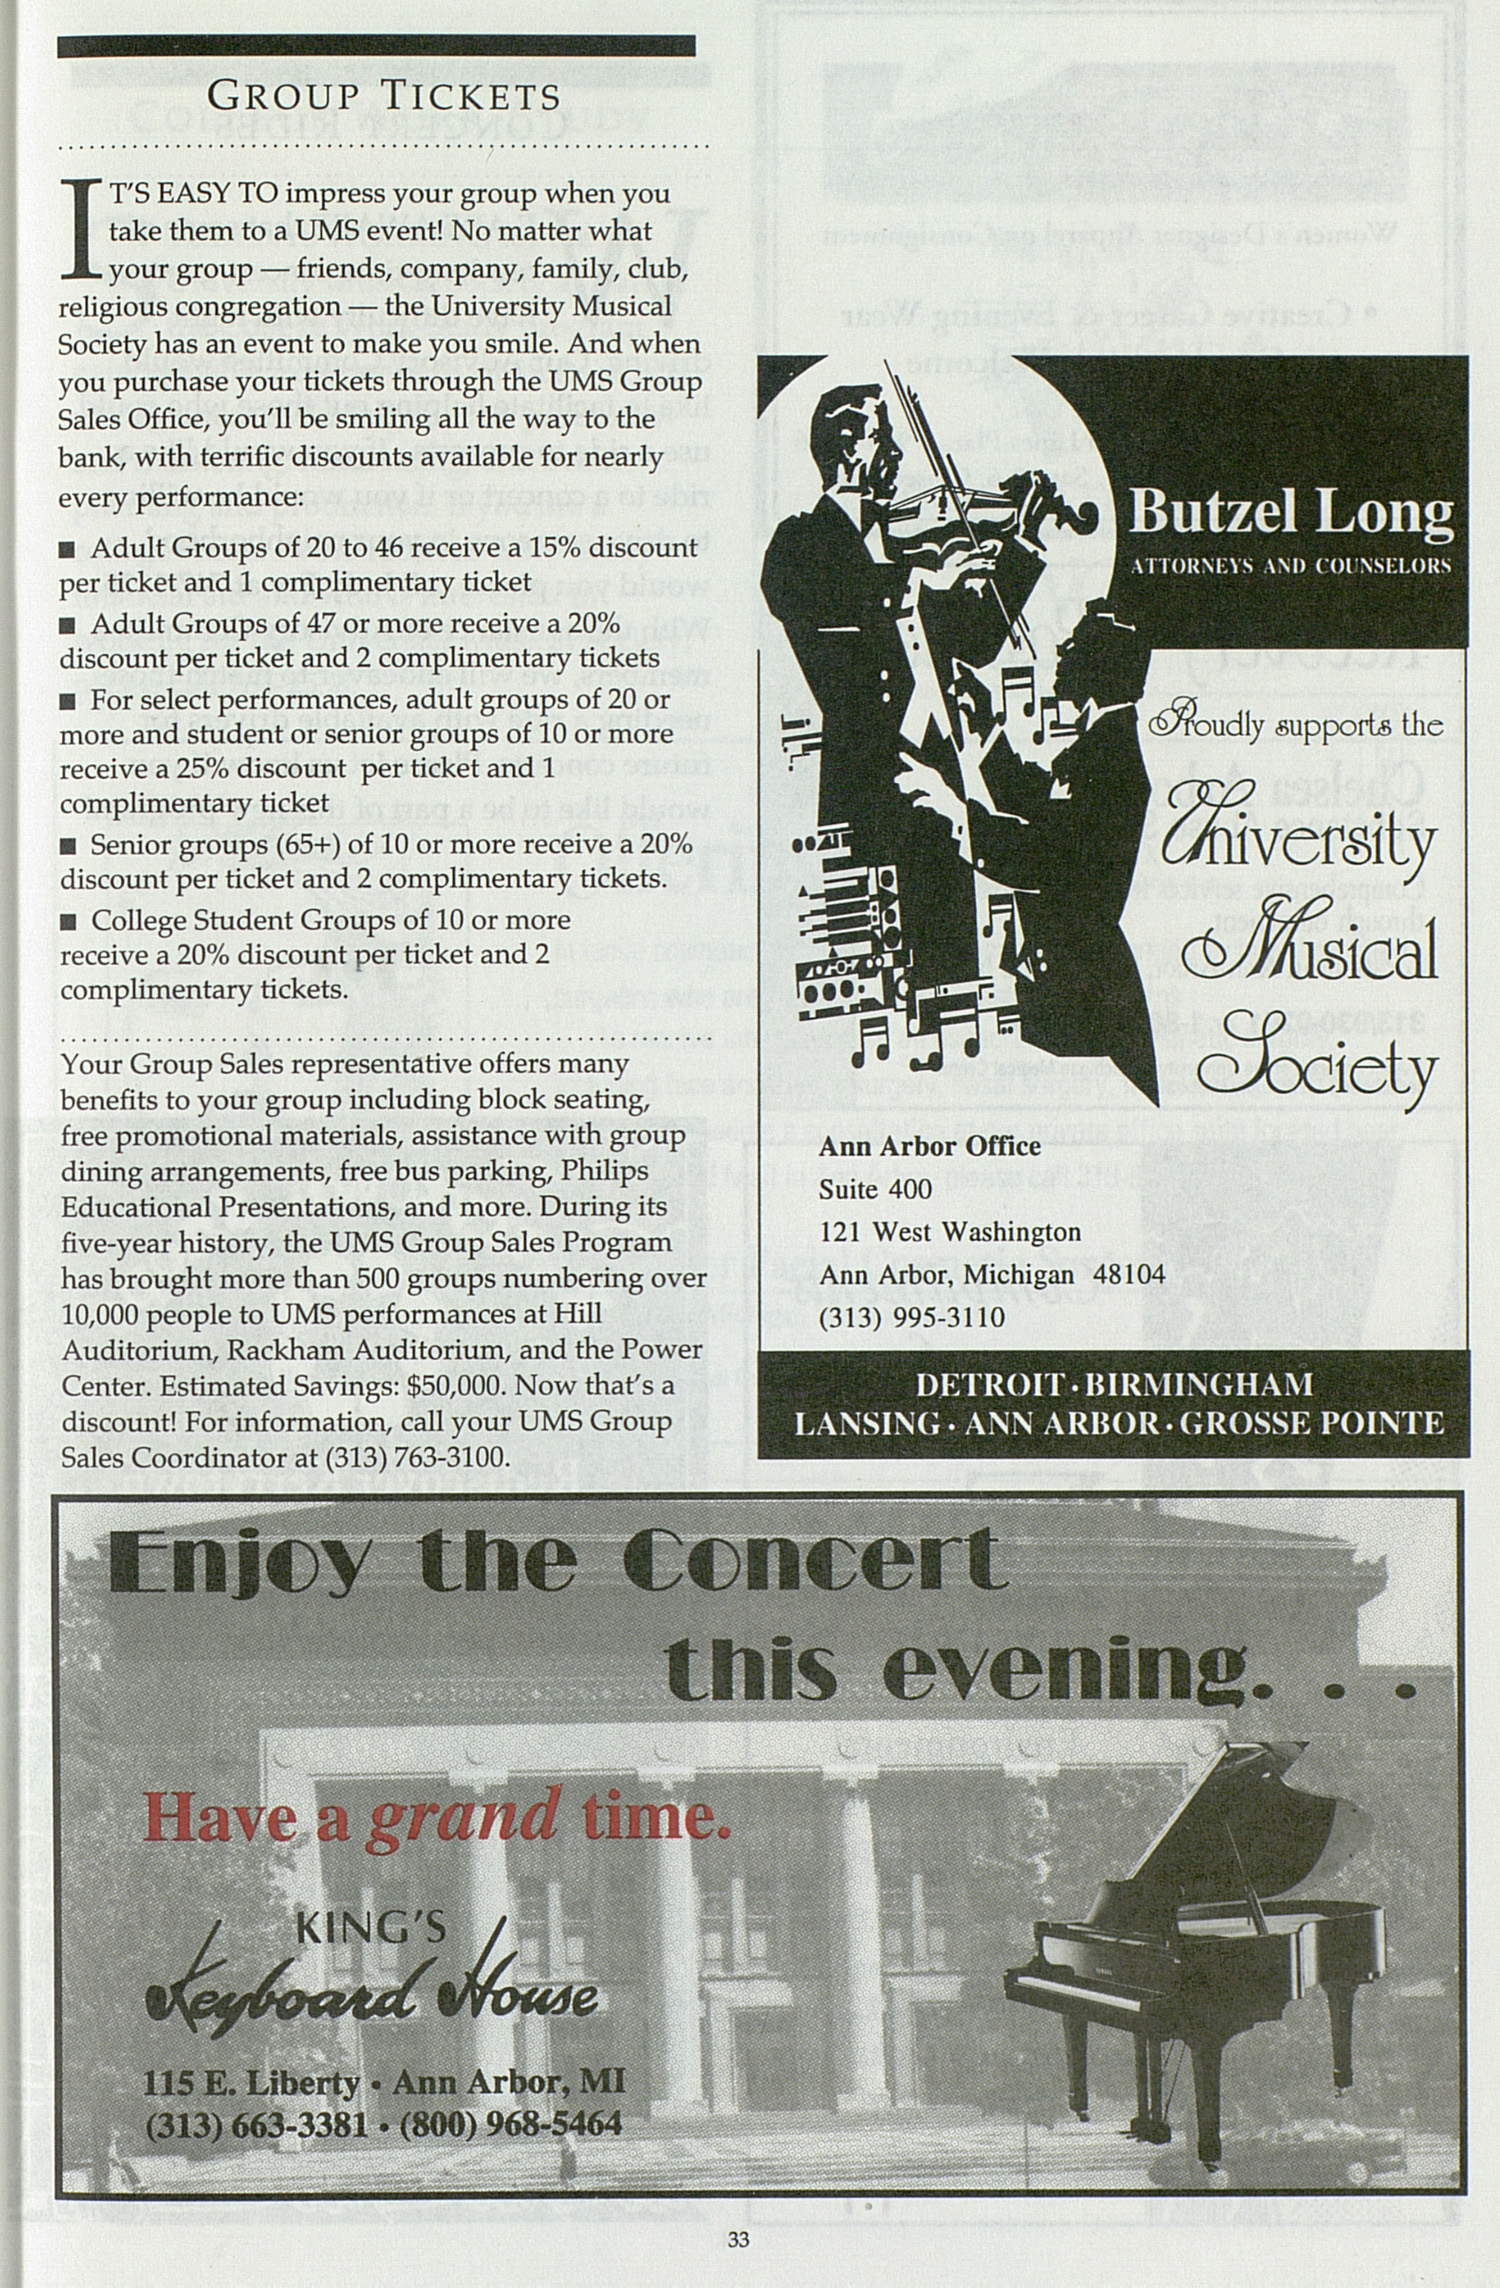 UMS Concert Program, Thursday Apr. 06 To 25: University Musical Society: 1994-1995 Winter - Thursday Apr. 06 To 25 --  image